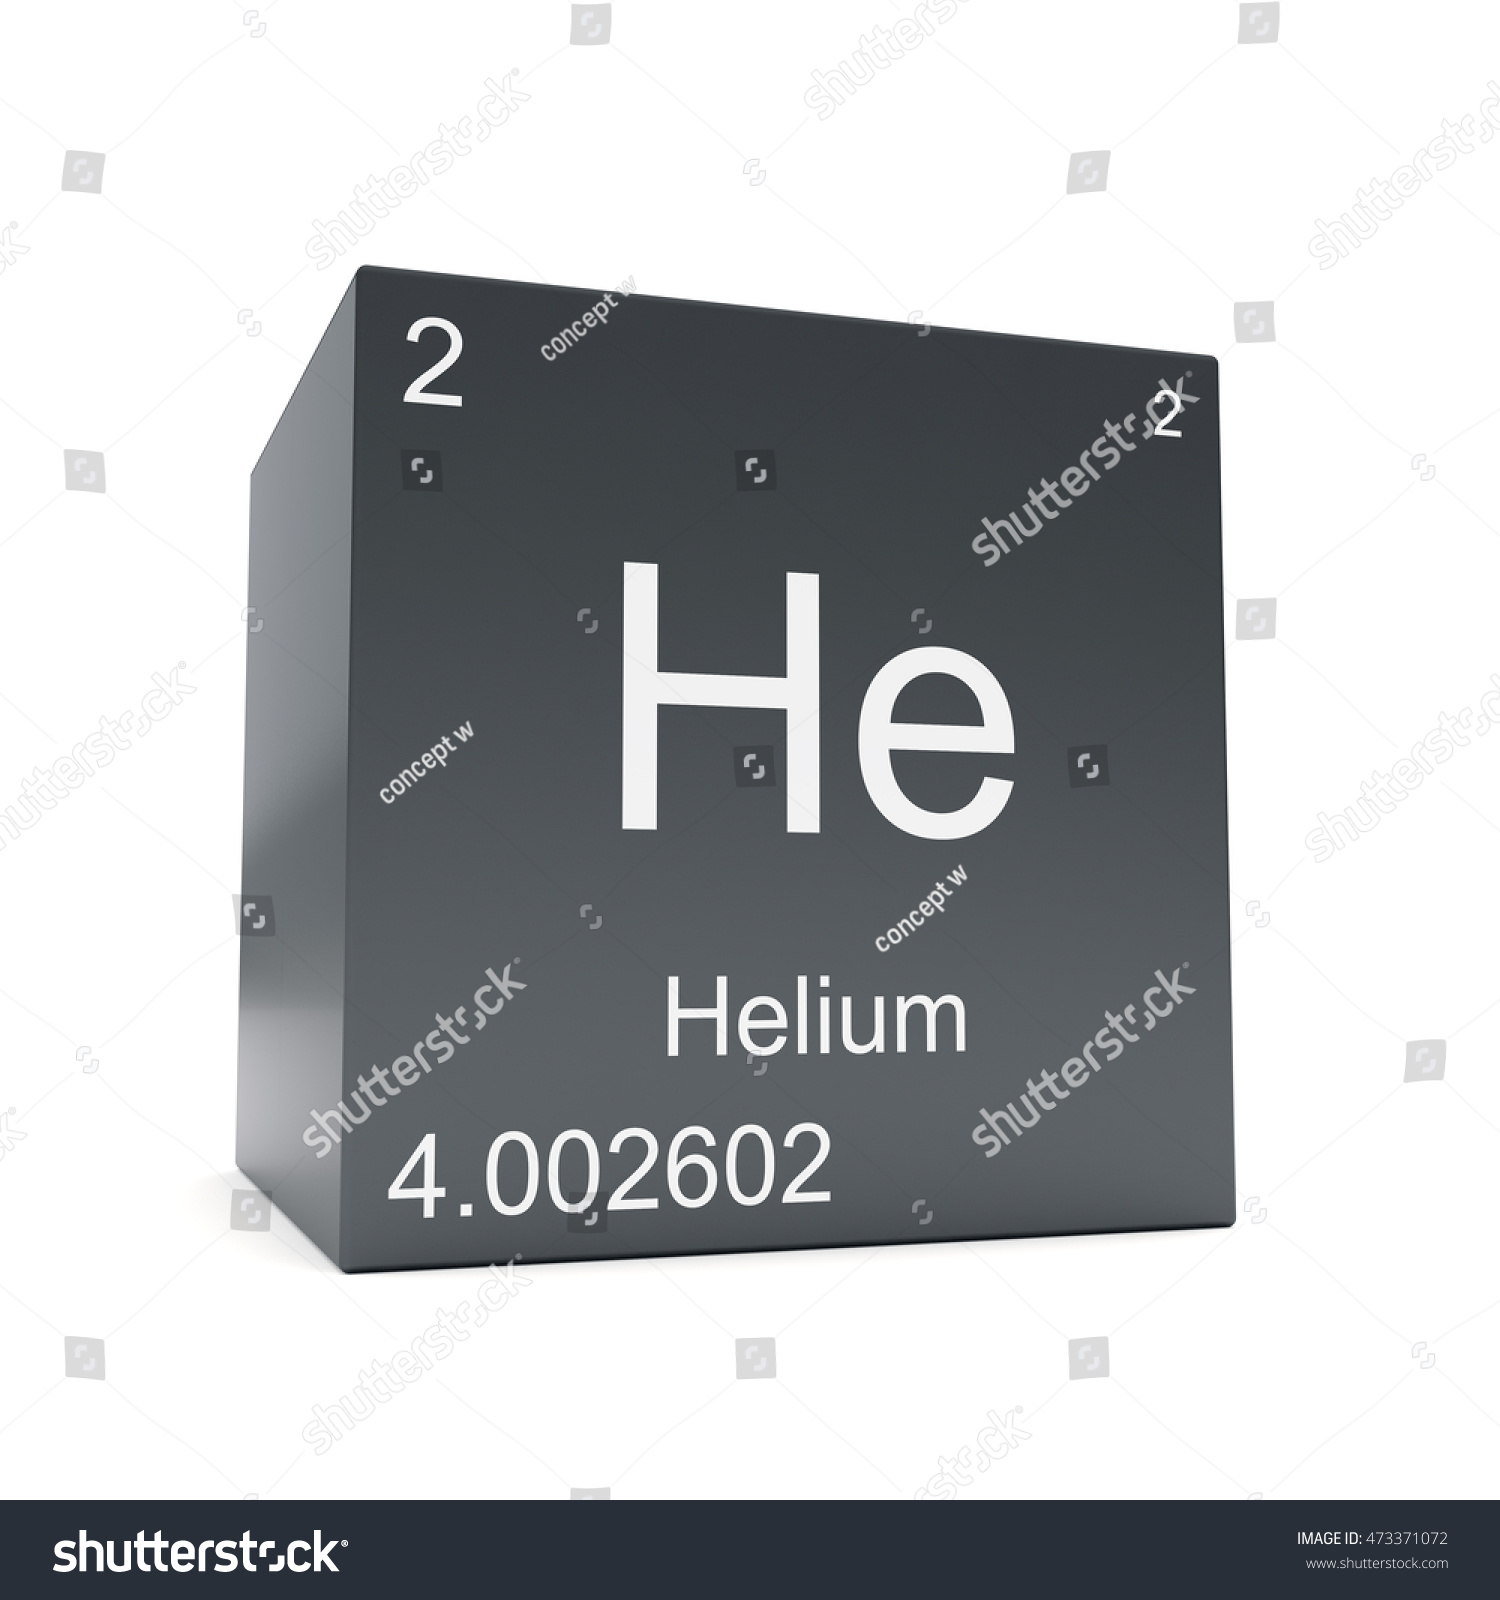 Helium chemical element symbol periodic table stock illustration helium chemical element symbol from the periodic table displayed on black cube 3d render gamestrikefo Images